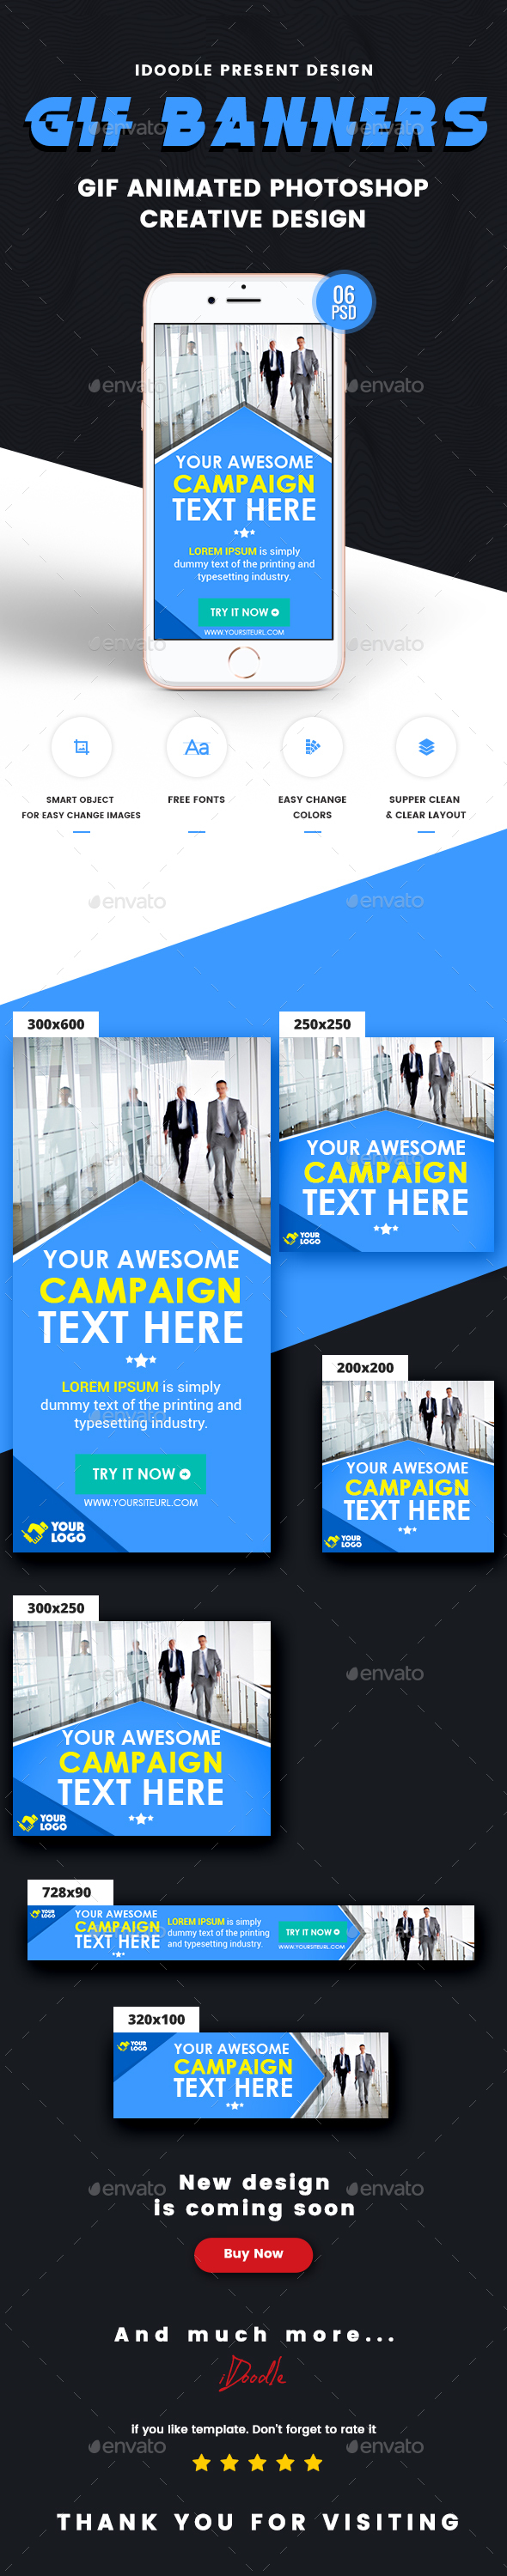 GraphicRiver Animated multipurpose Banners Ad 21049628